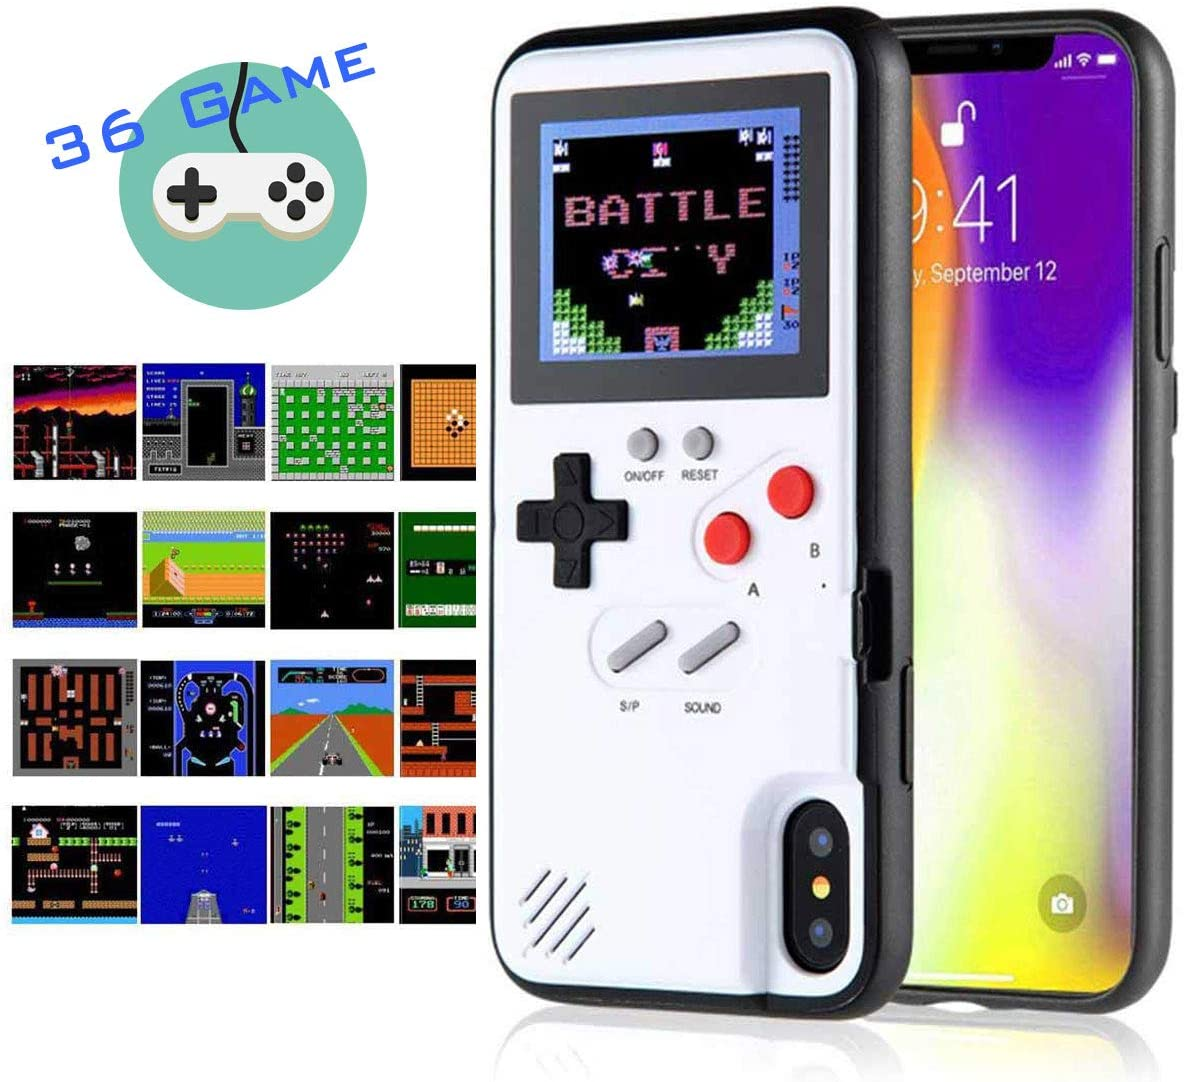 Amazon Com Gameboy Iphone Case Handheld Game Console Case Protective Cover Gameboy Phone Case For Iphone 6 6s 7 8 Plus X Xr Xs Max With 36 Classic Retro Games White Iphone Xs Max